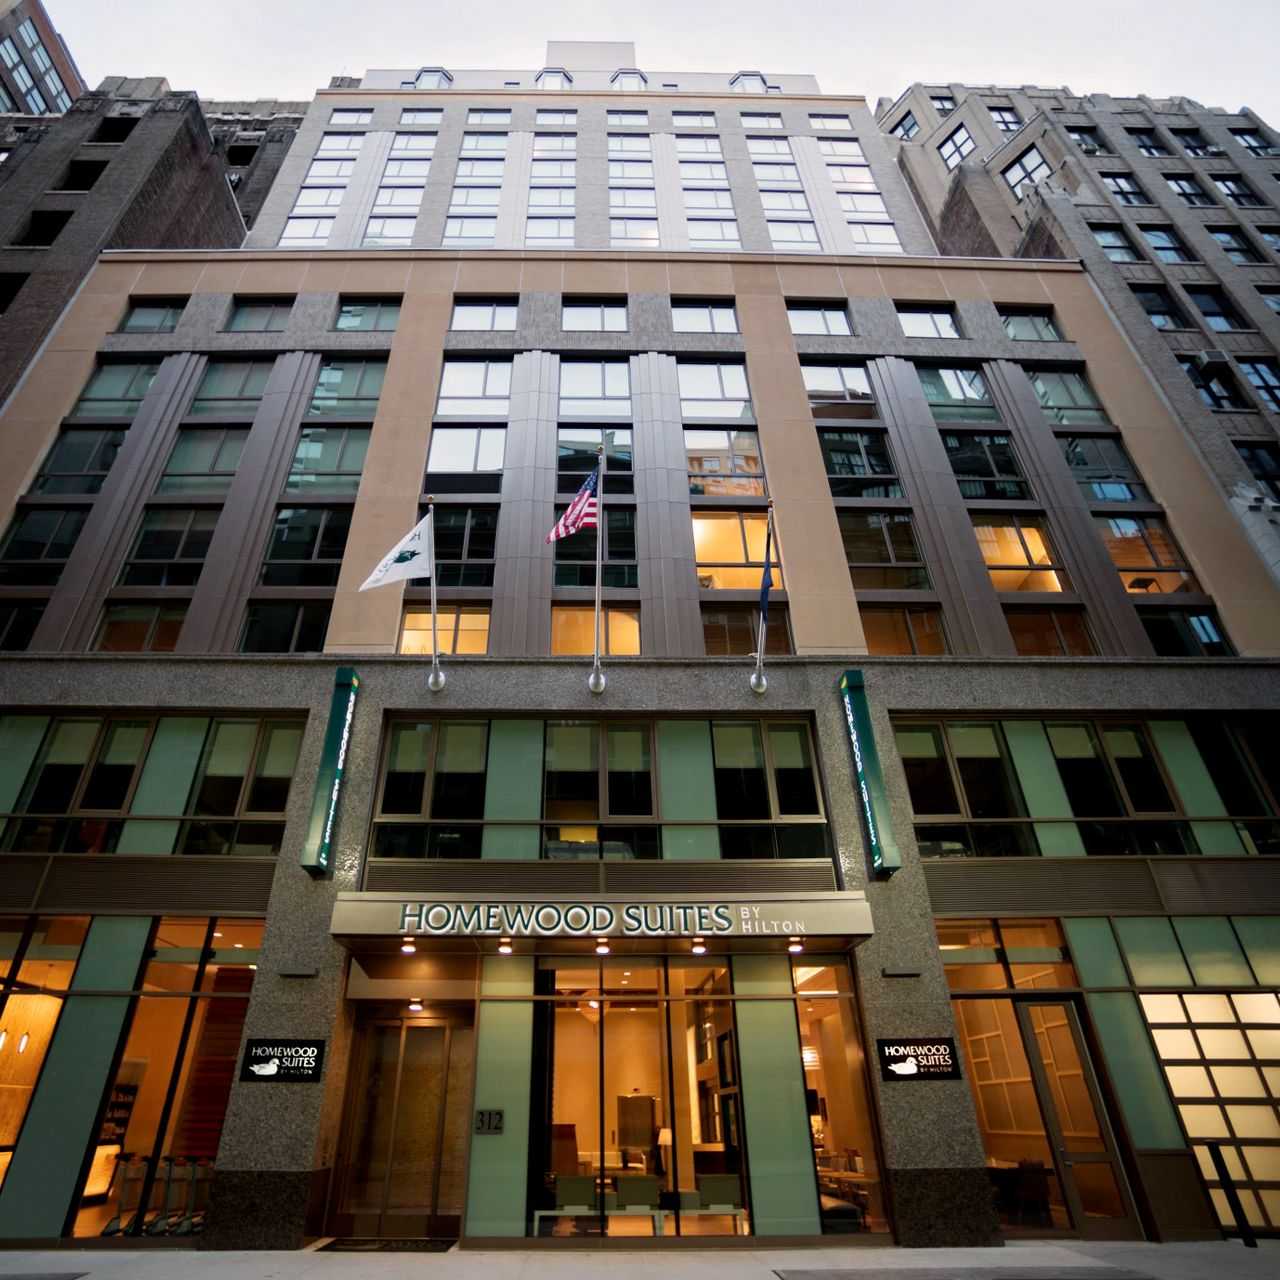 Südstaaten Küche New York Hotel New York Homewood Suites Midtown Times Canusa